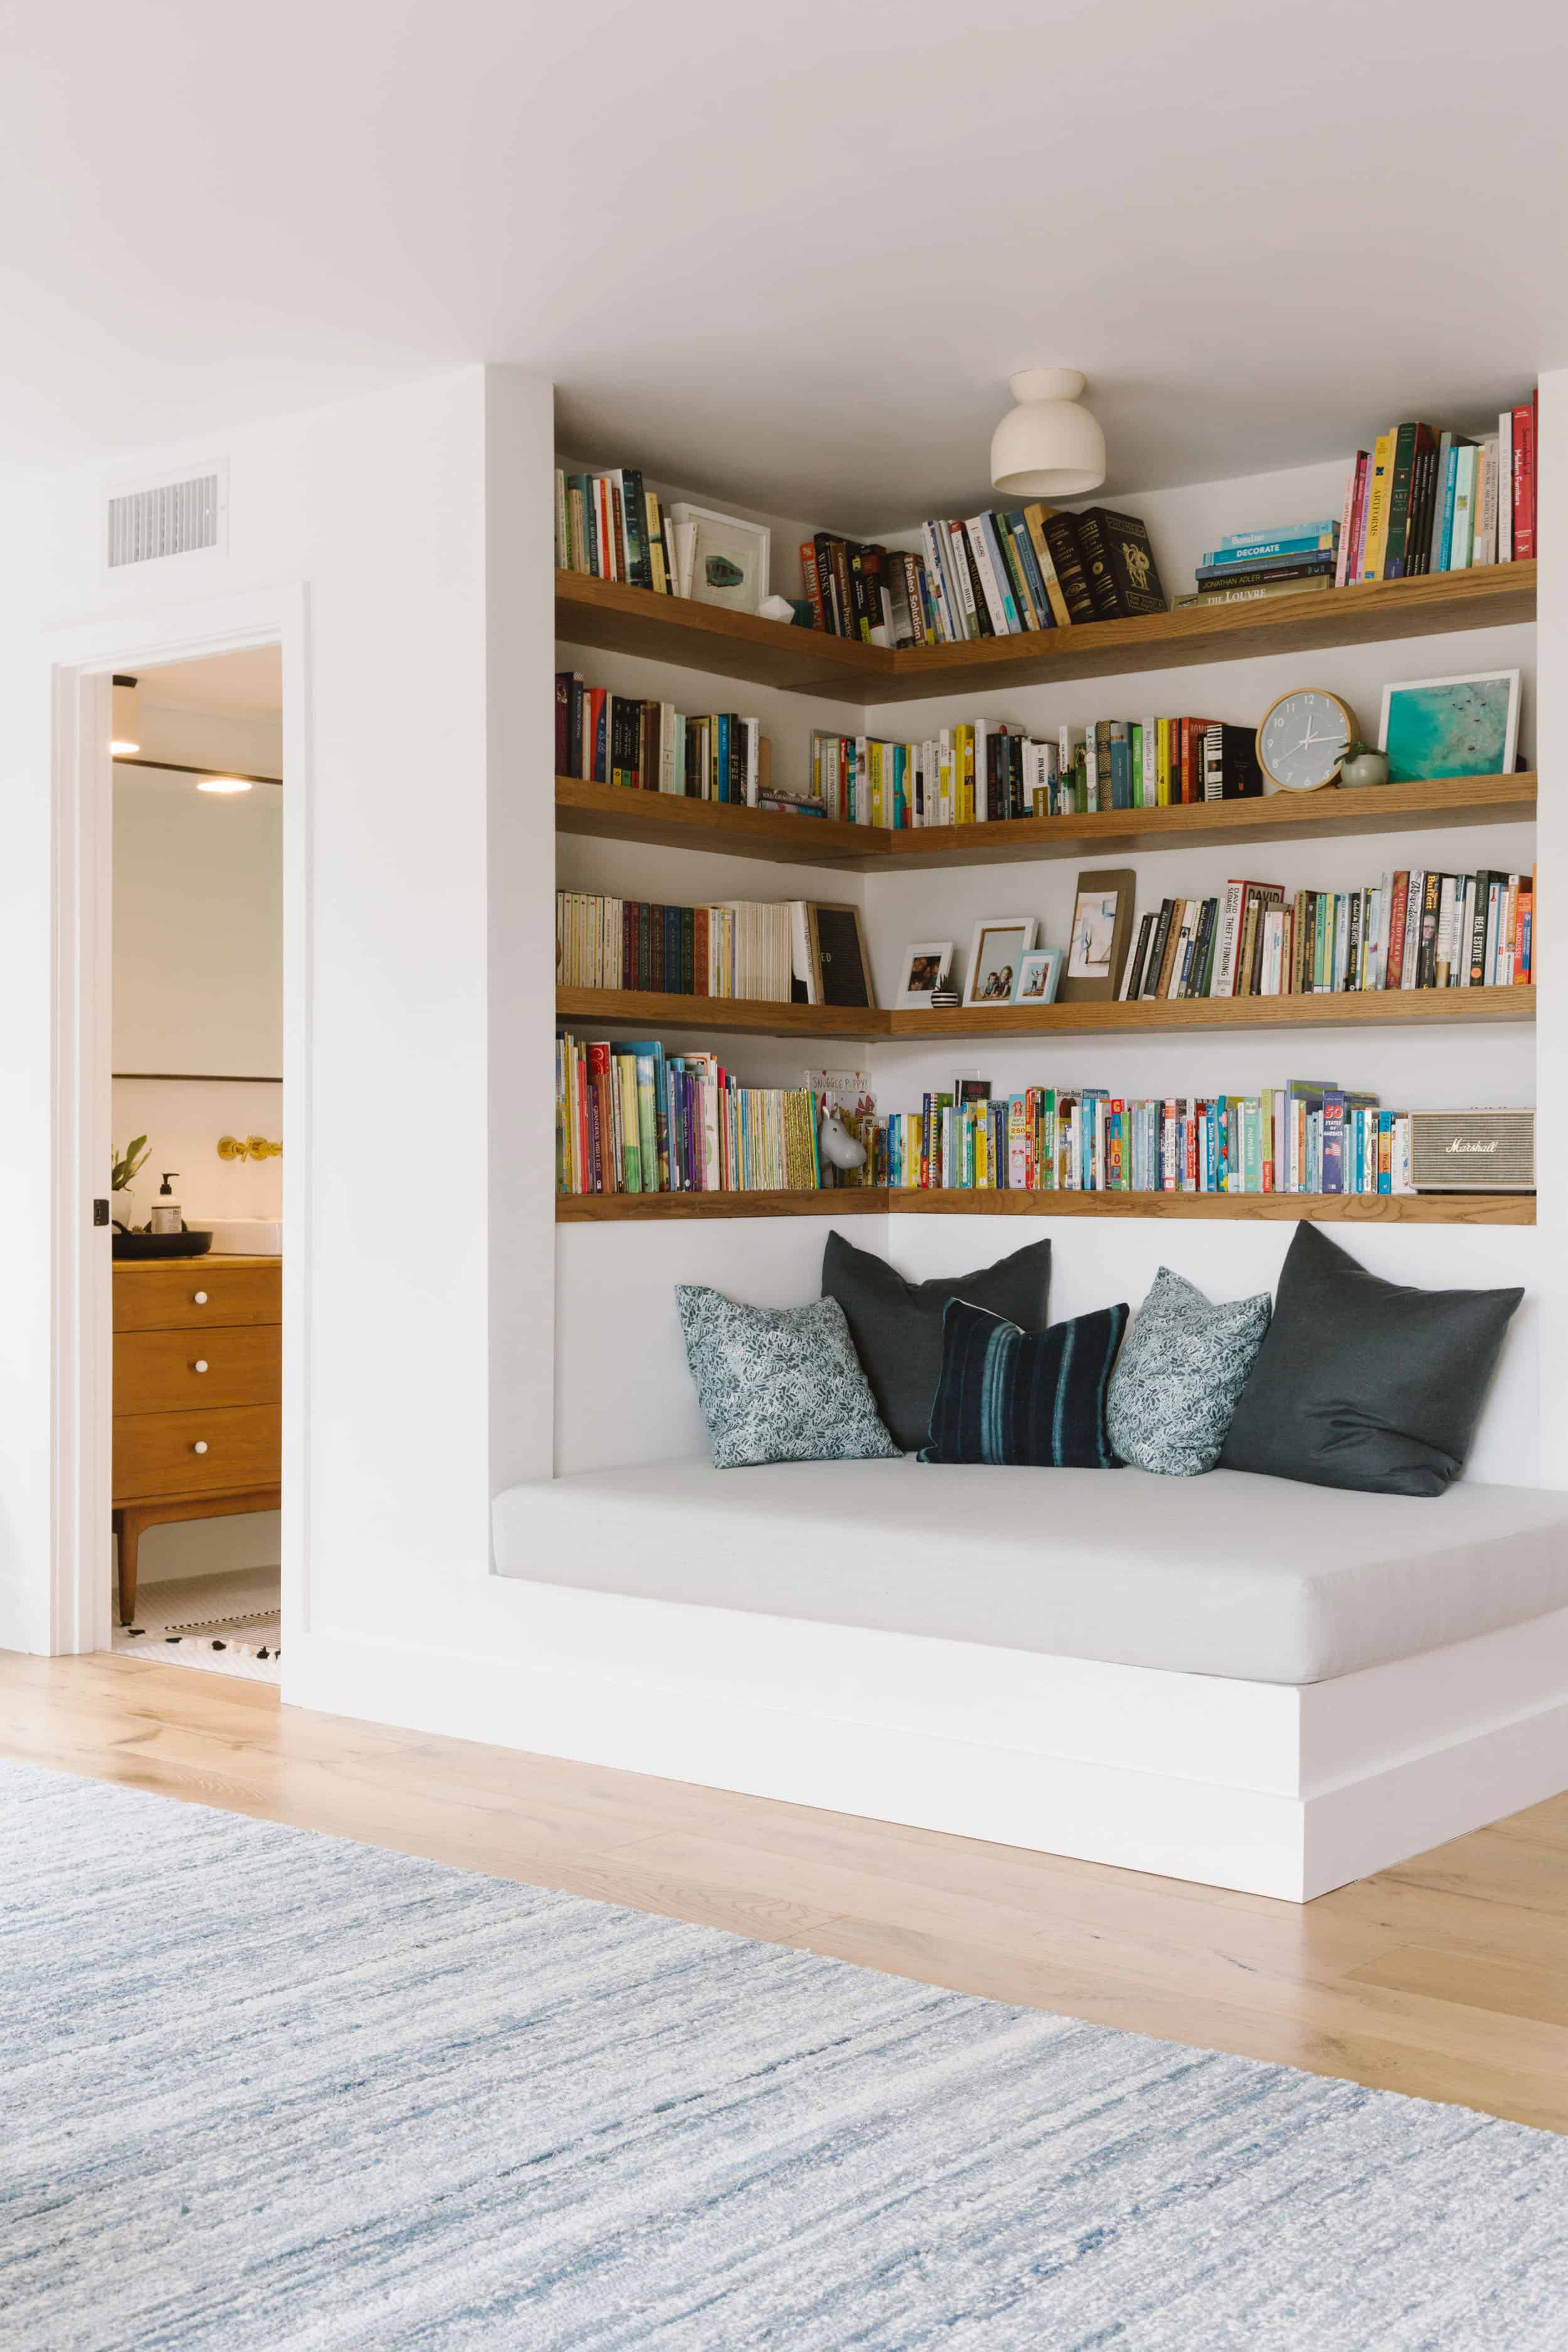 Samantha Gluck Emily Henderson Playroom Reading Corner